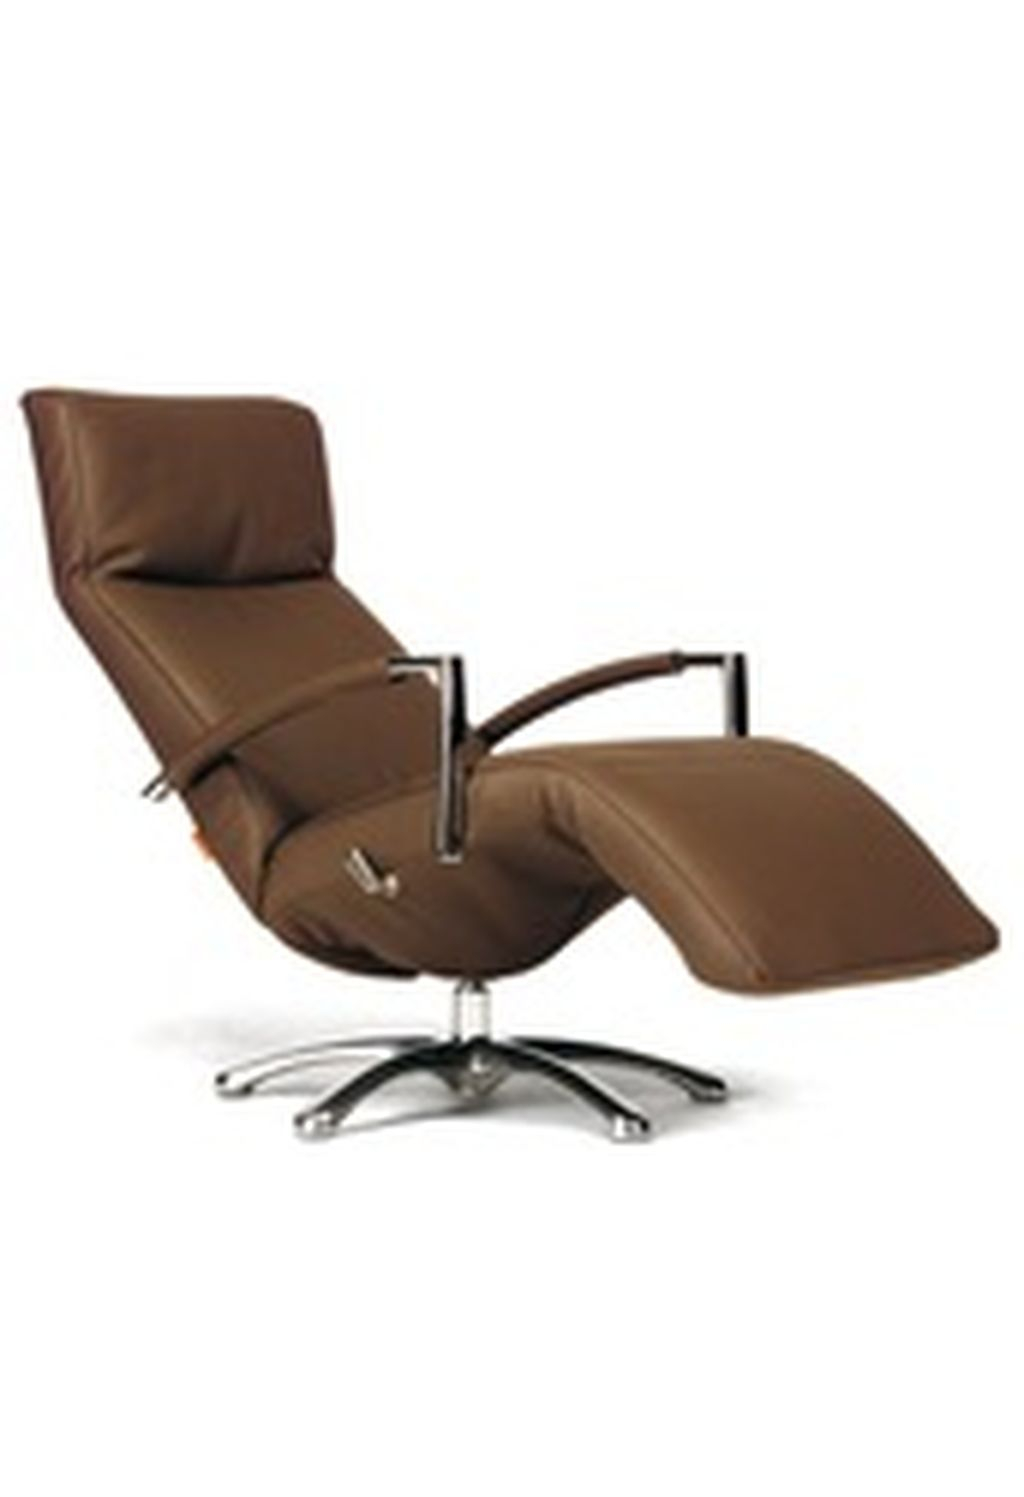 Favorite Chairs Design Ideas For Mental And Physical Relaxation 30